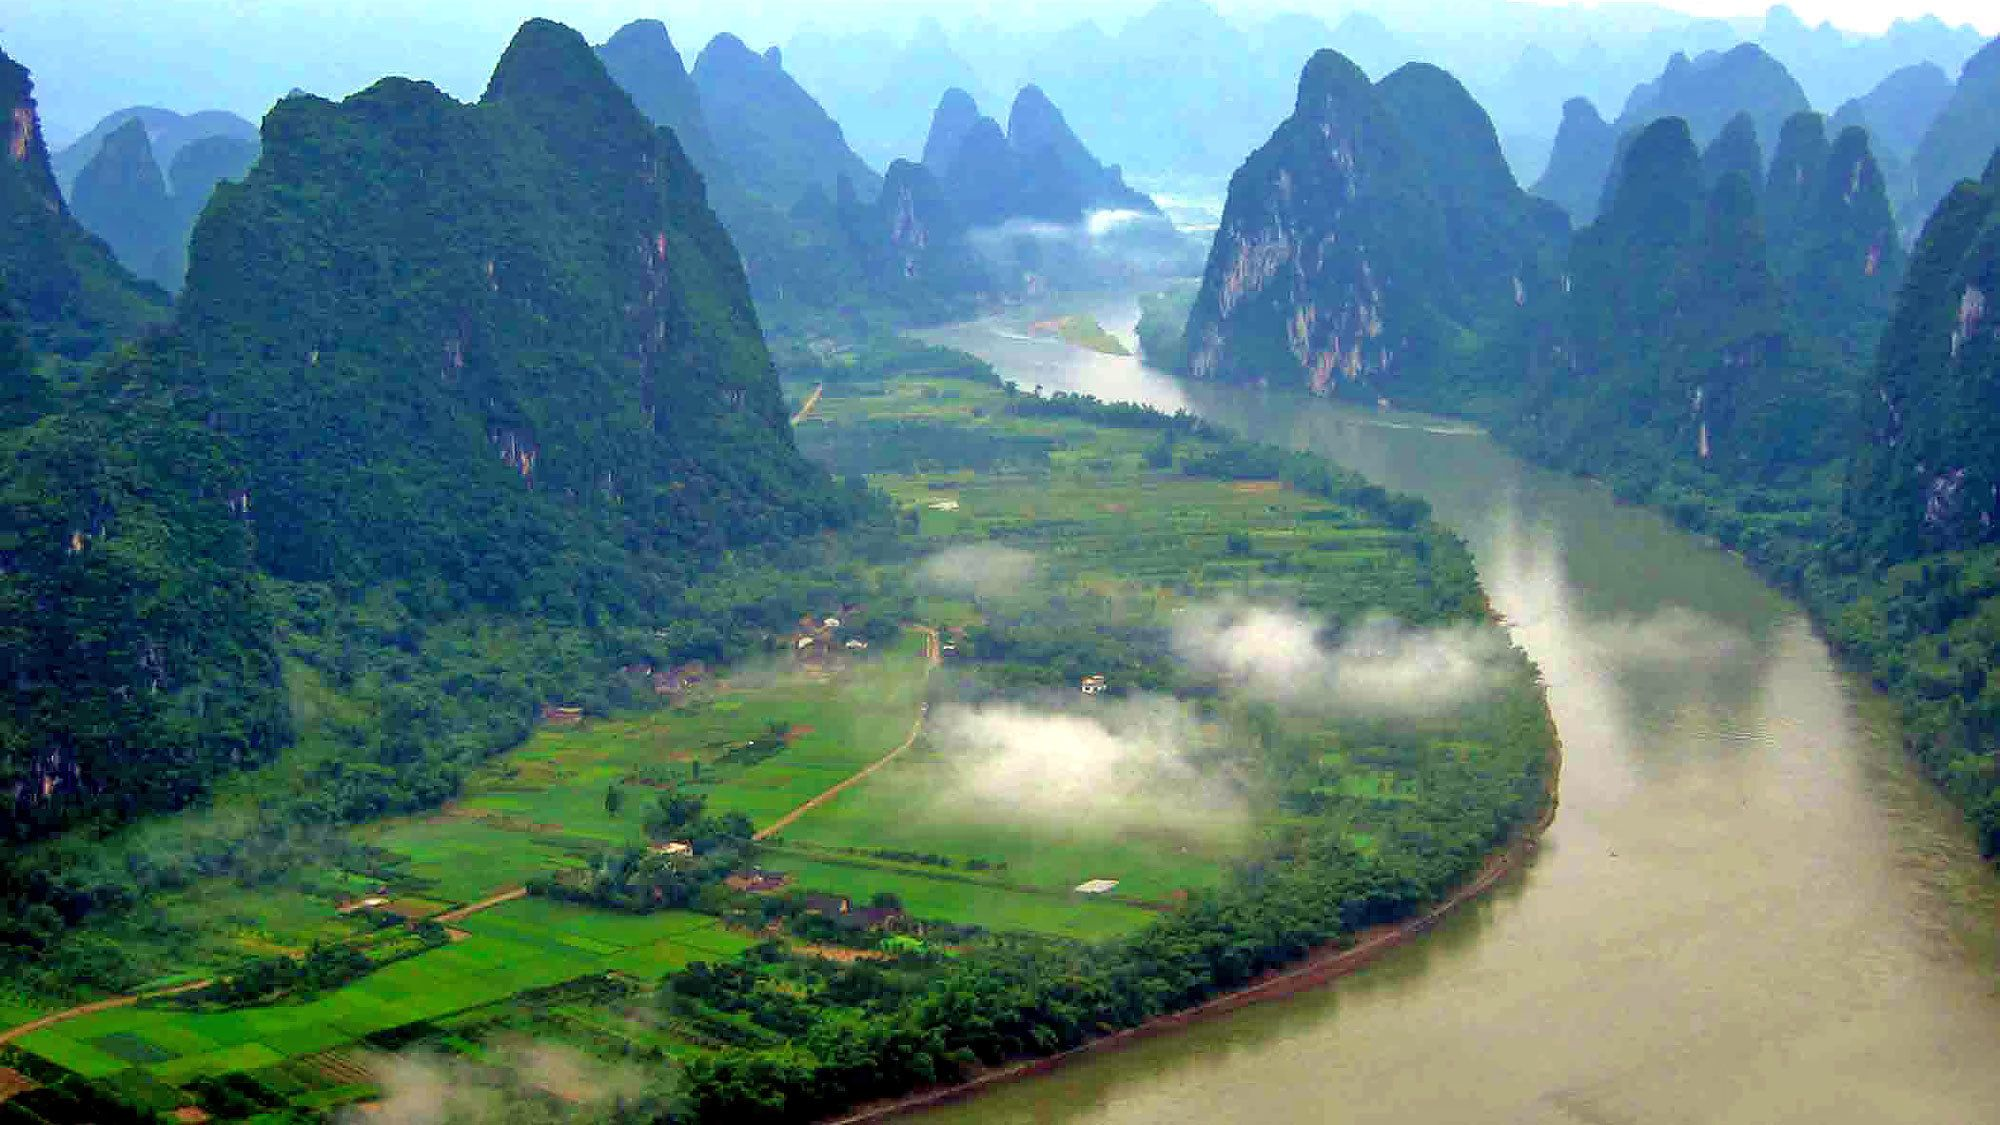 river channel between tall mountains in Guilin